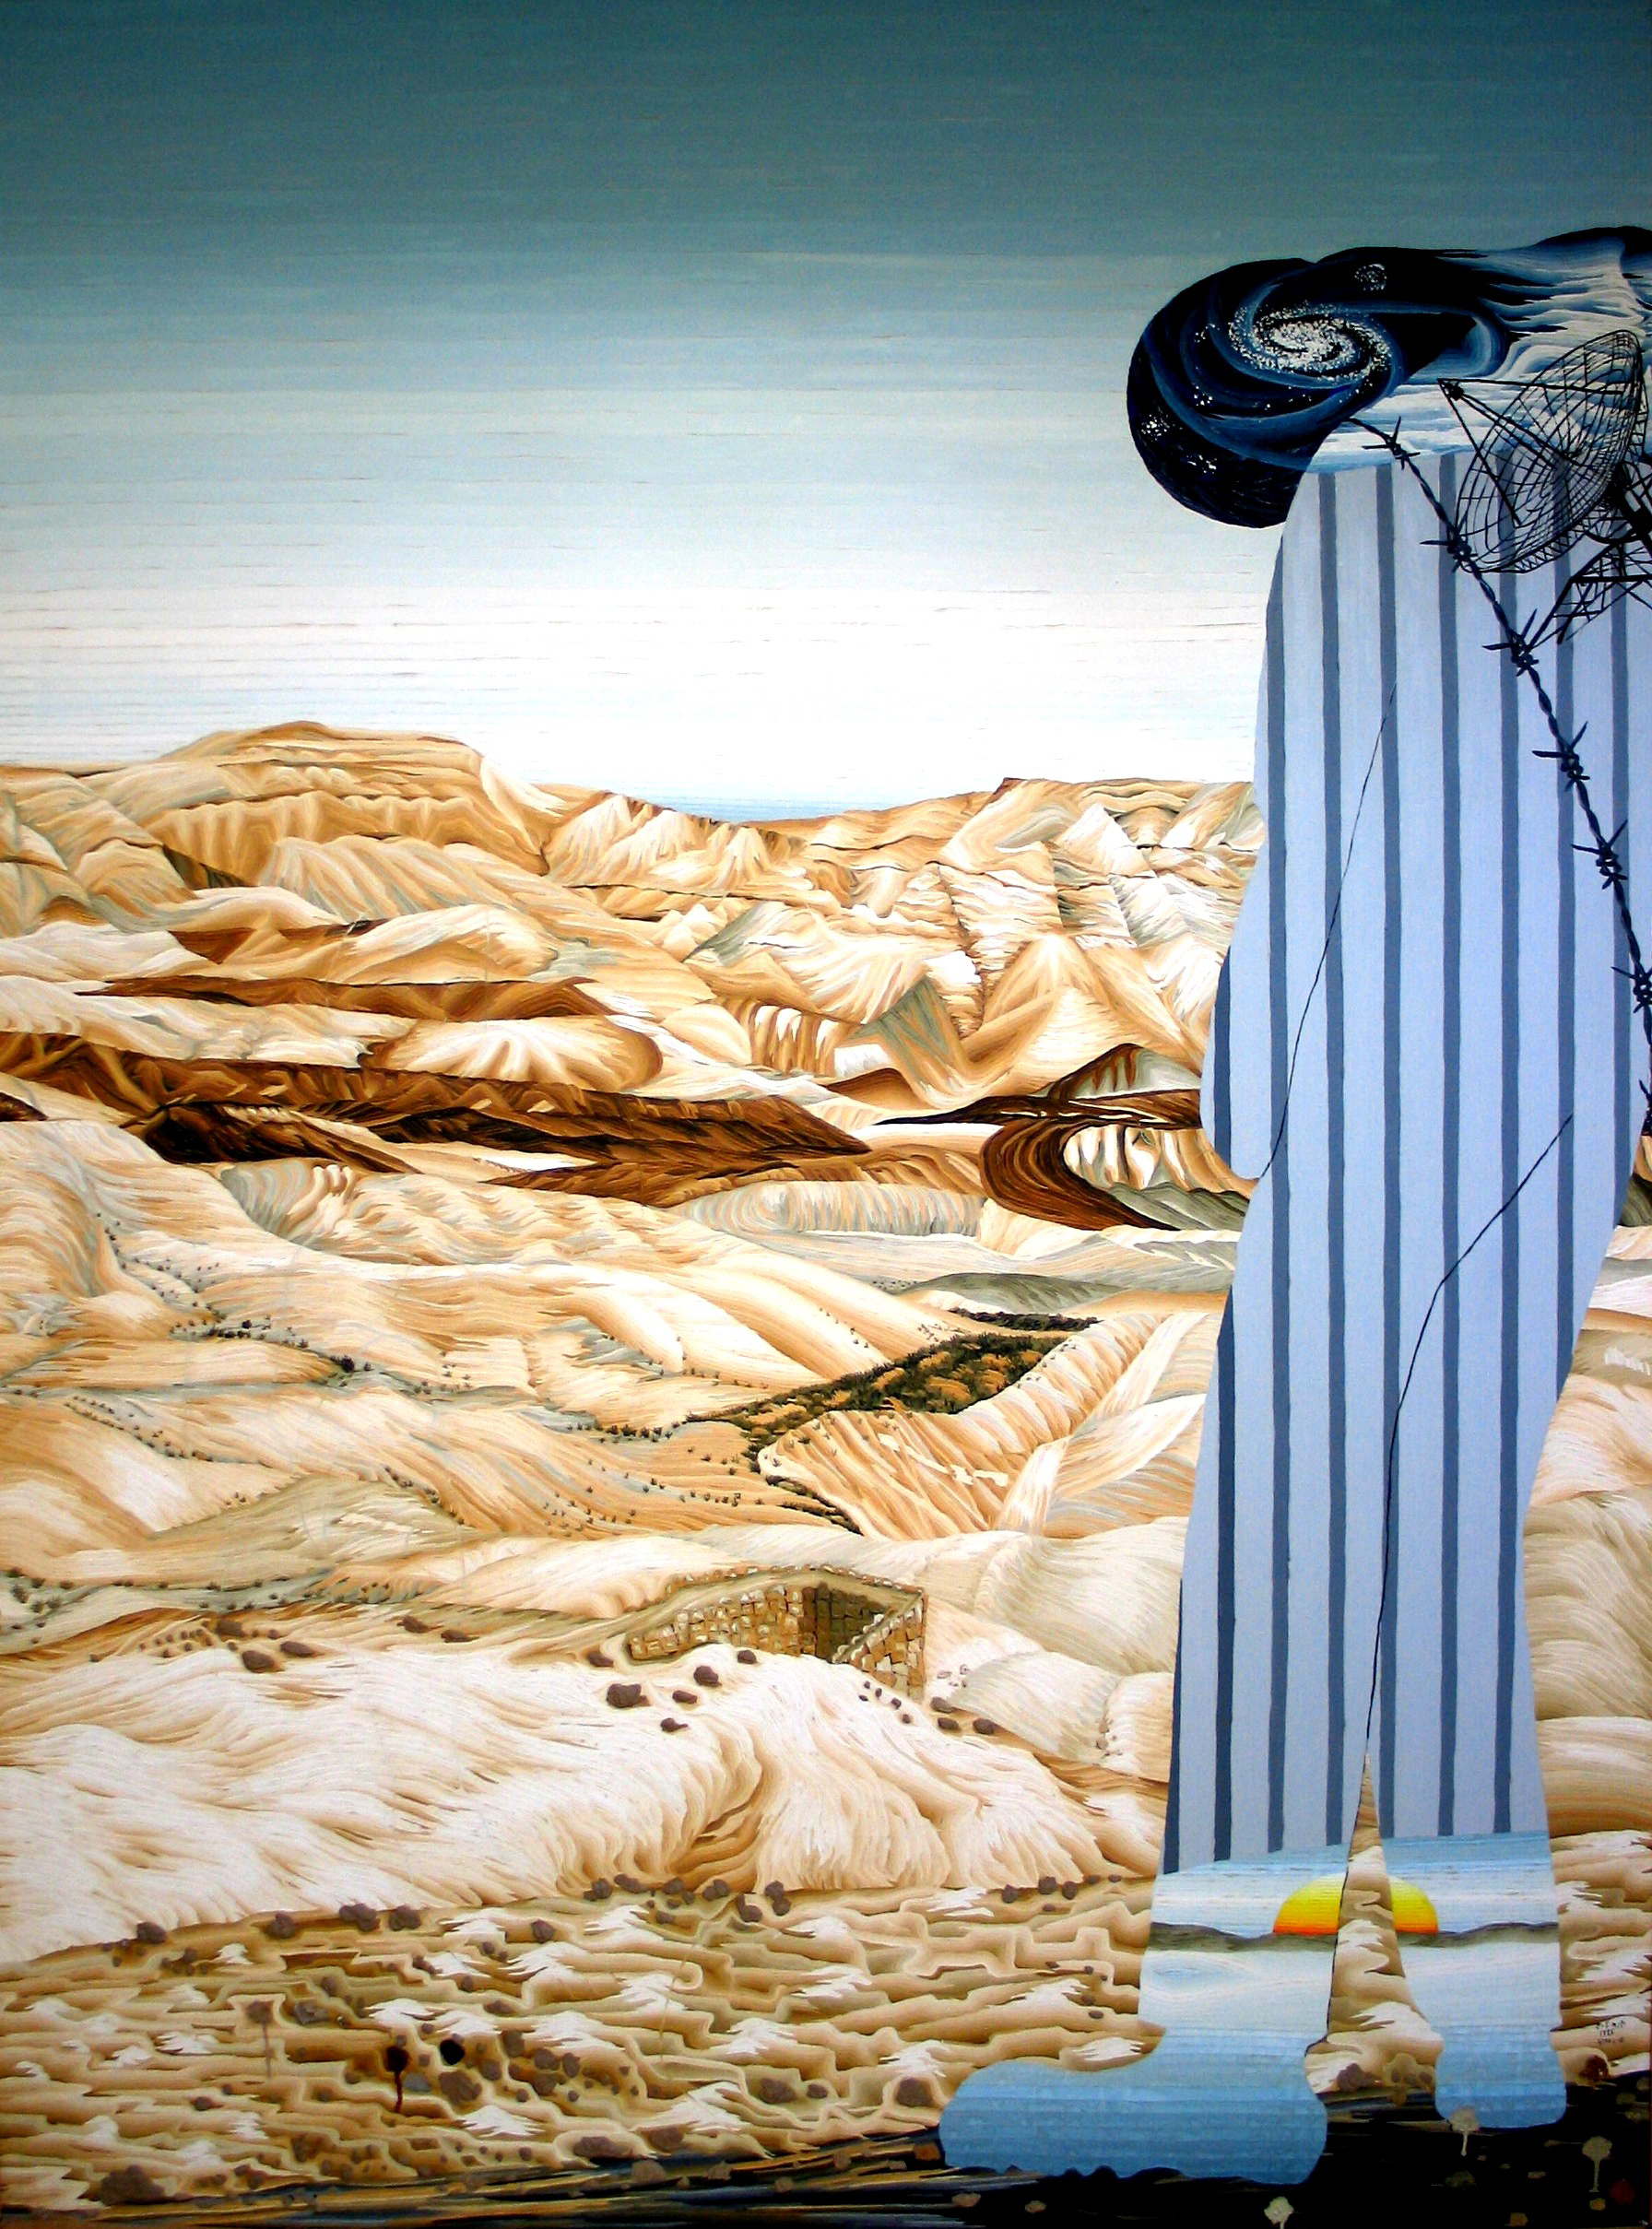 68 - Oil on canvas 200X150 cm.jpg